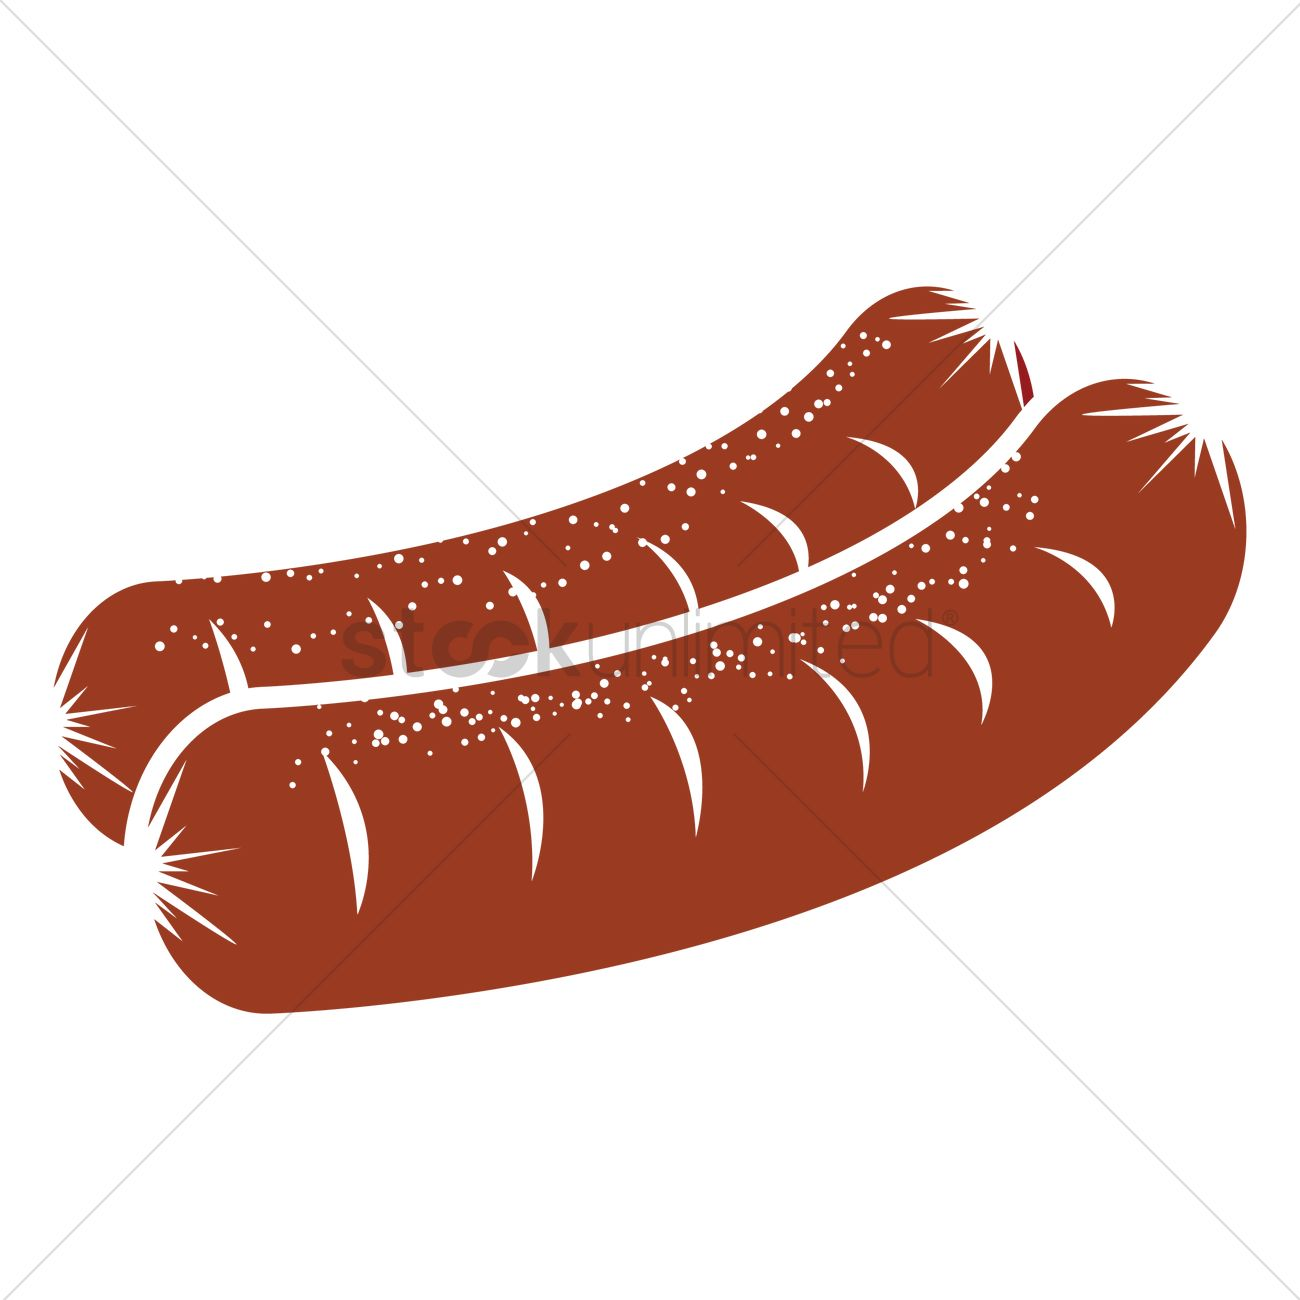 sausages vector image 1875613 stockunlimited